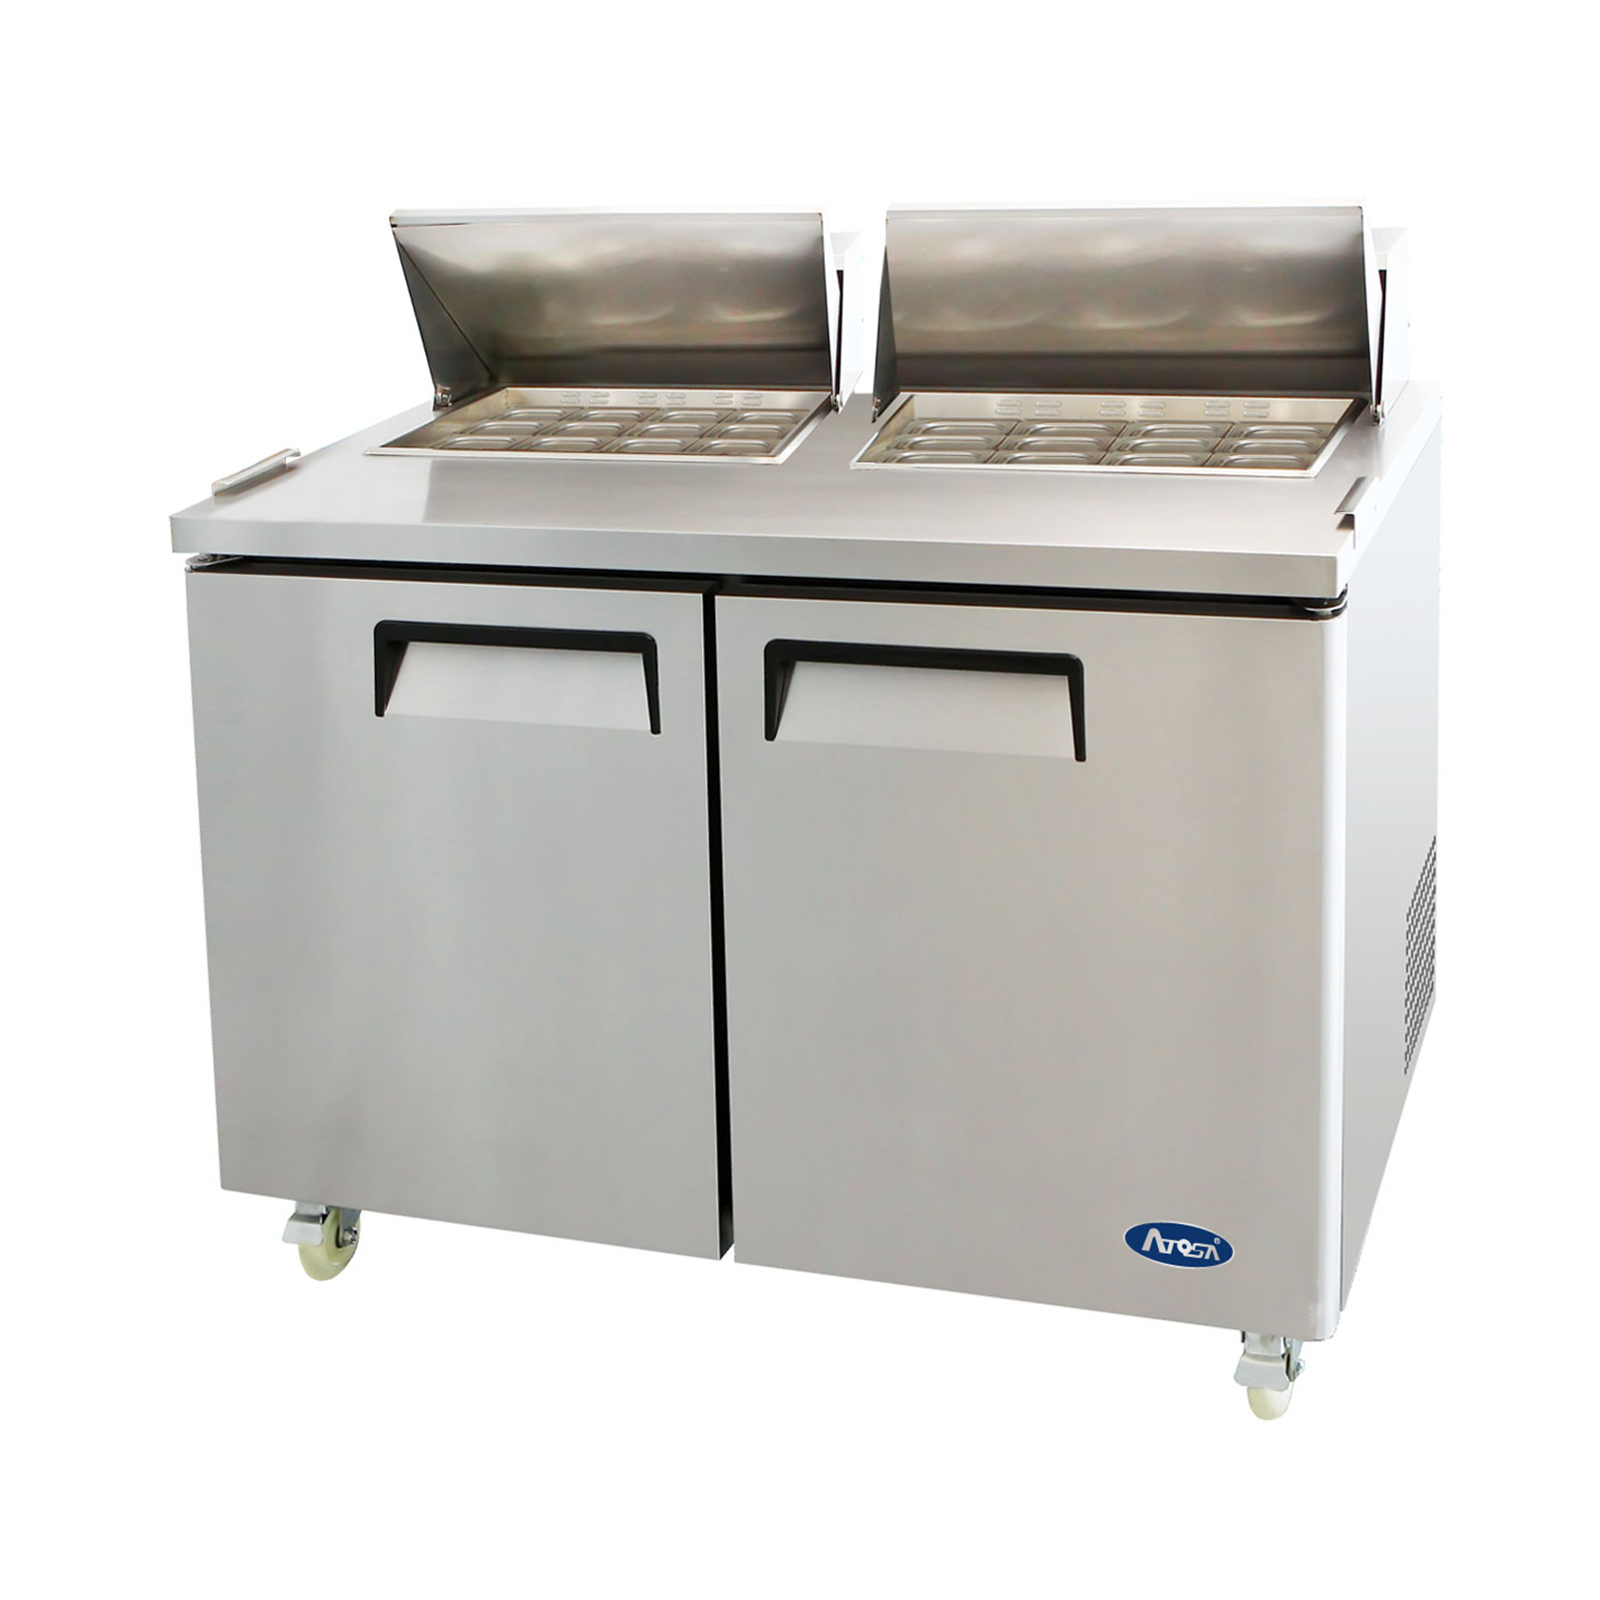 Atosa USA MSF8307GR refrigerated counter, mega top sandwich / salad unit